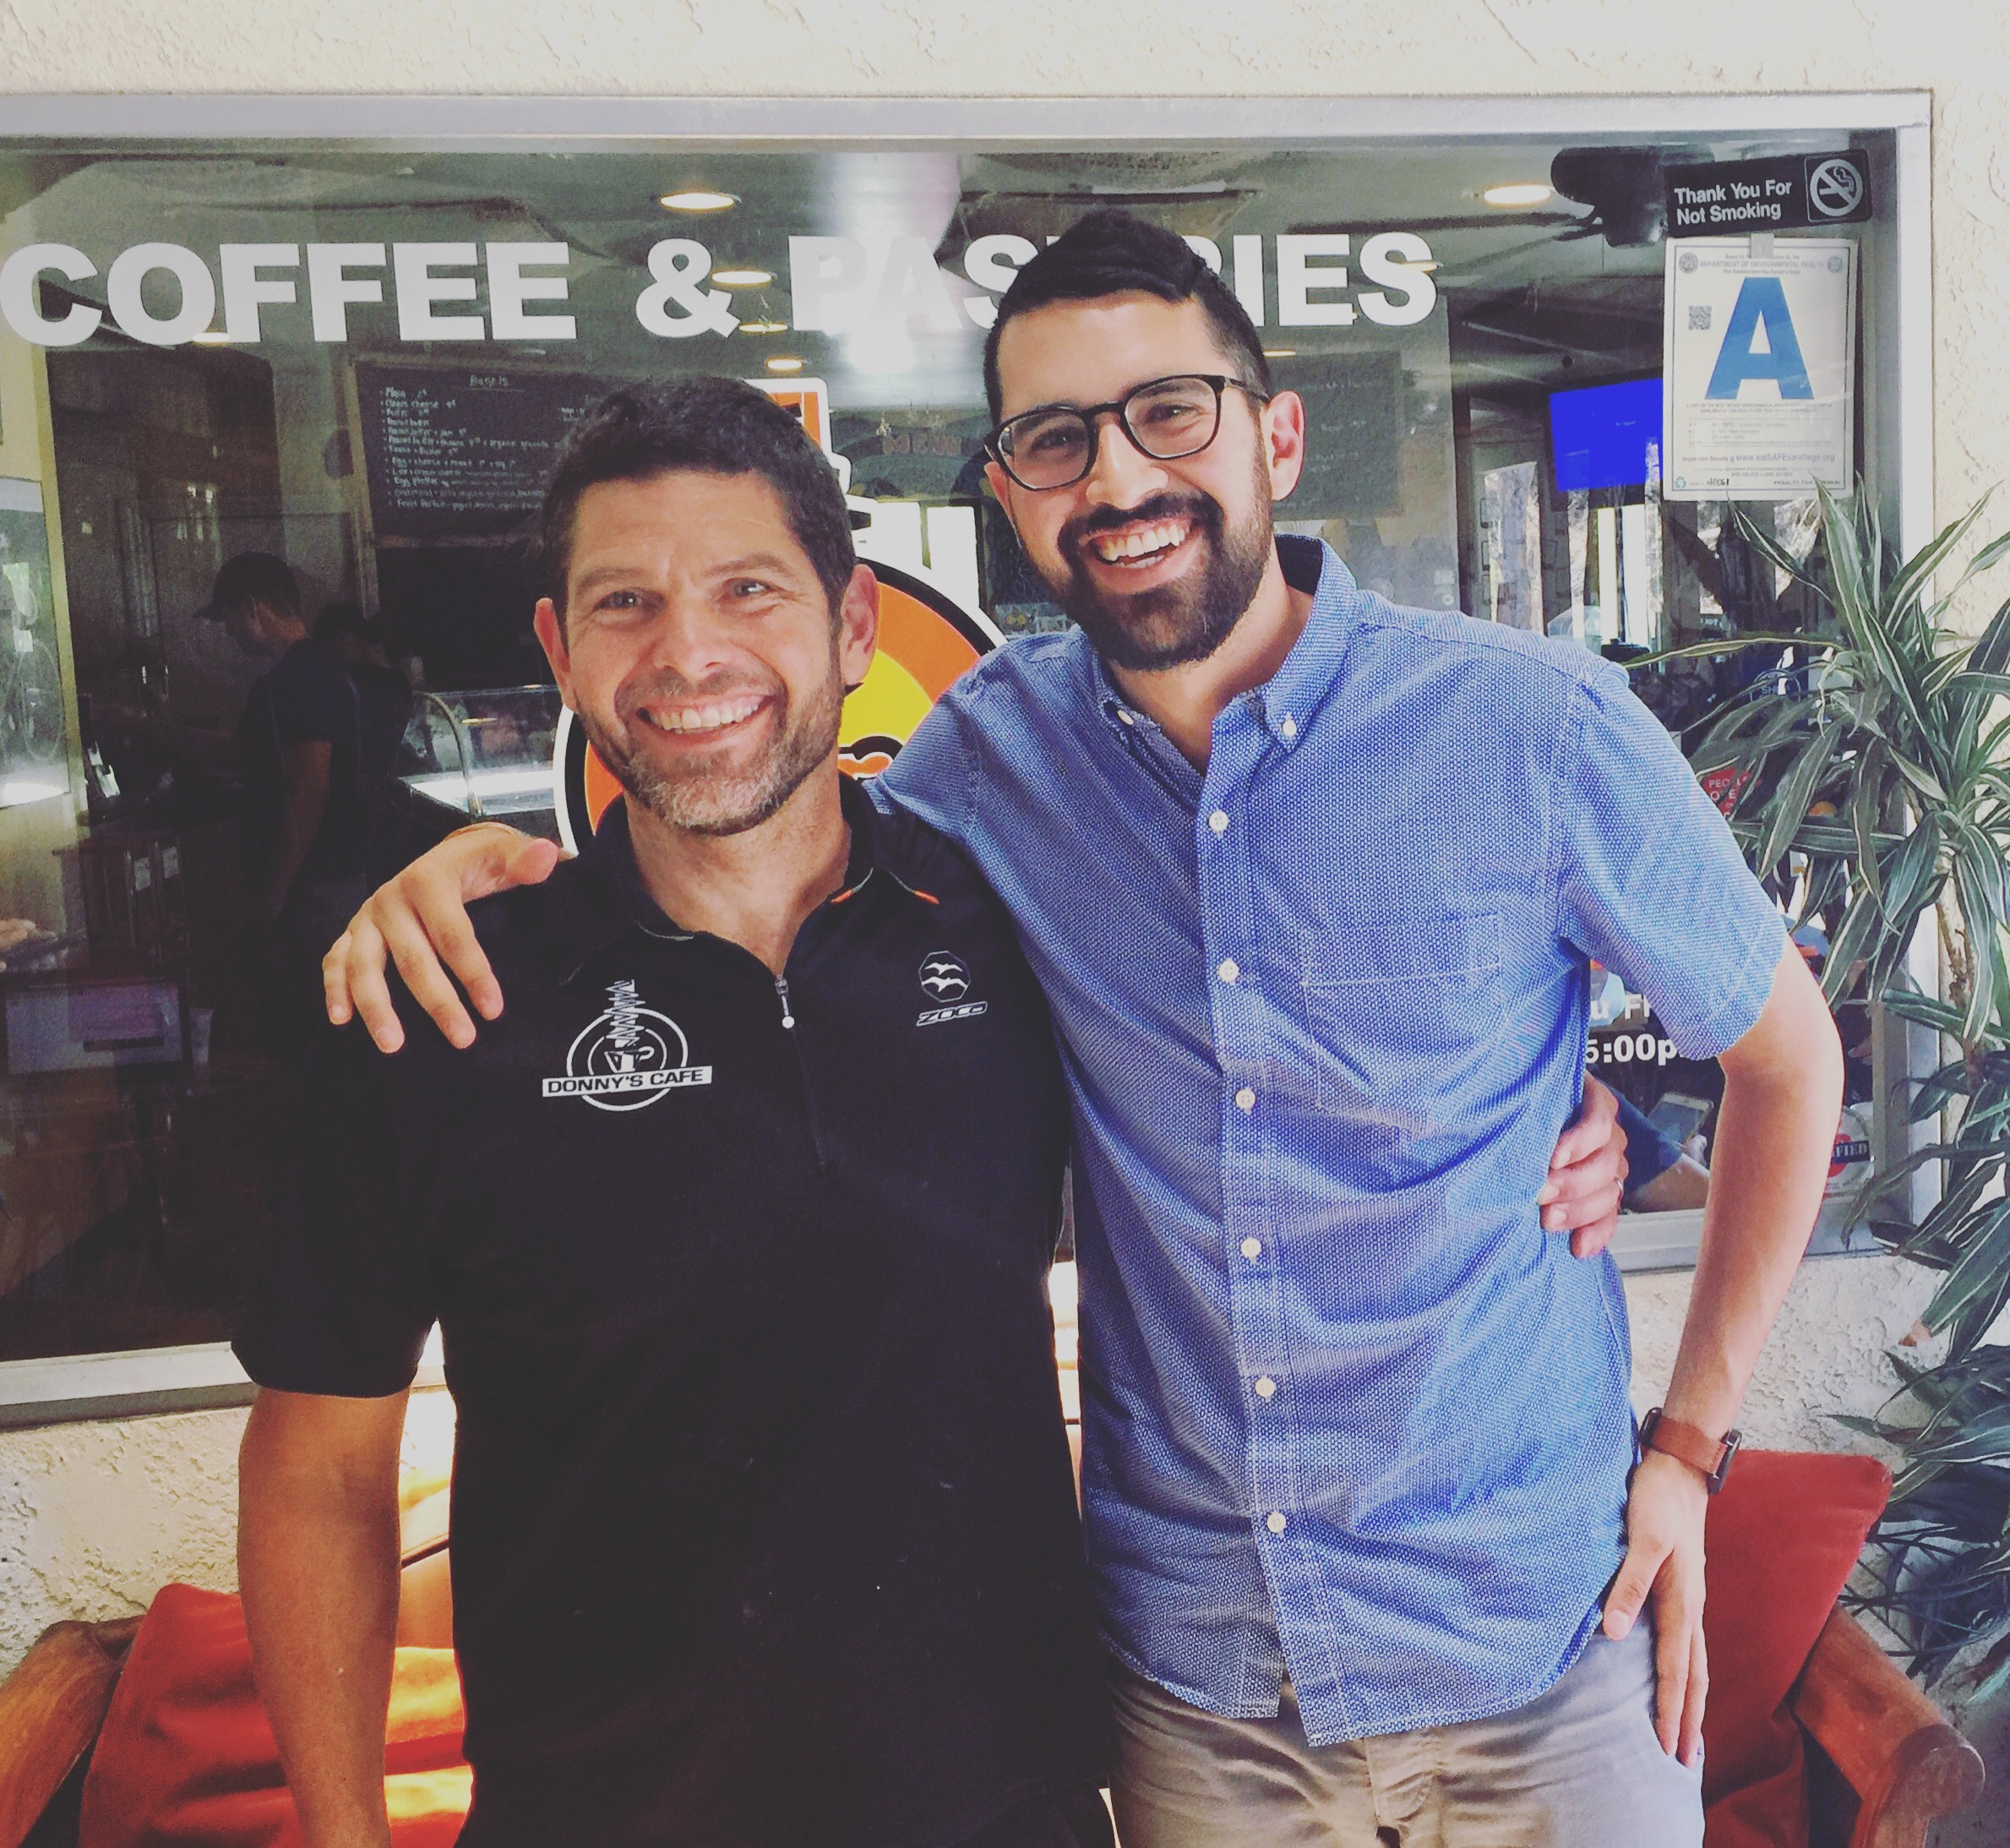 Donny was such a pleasure to interview. A true gentleman, and a true model of community respect.Thanks for the coffee and conversation Donny!